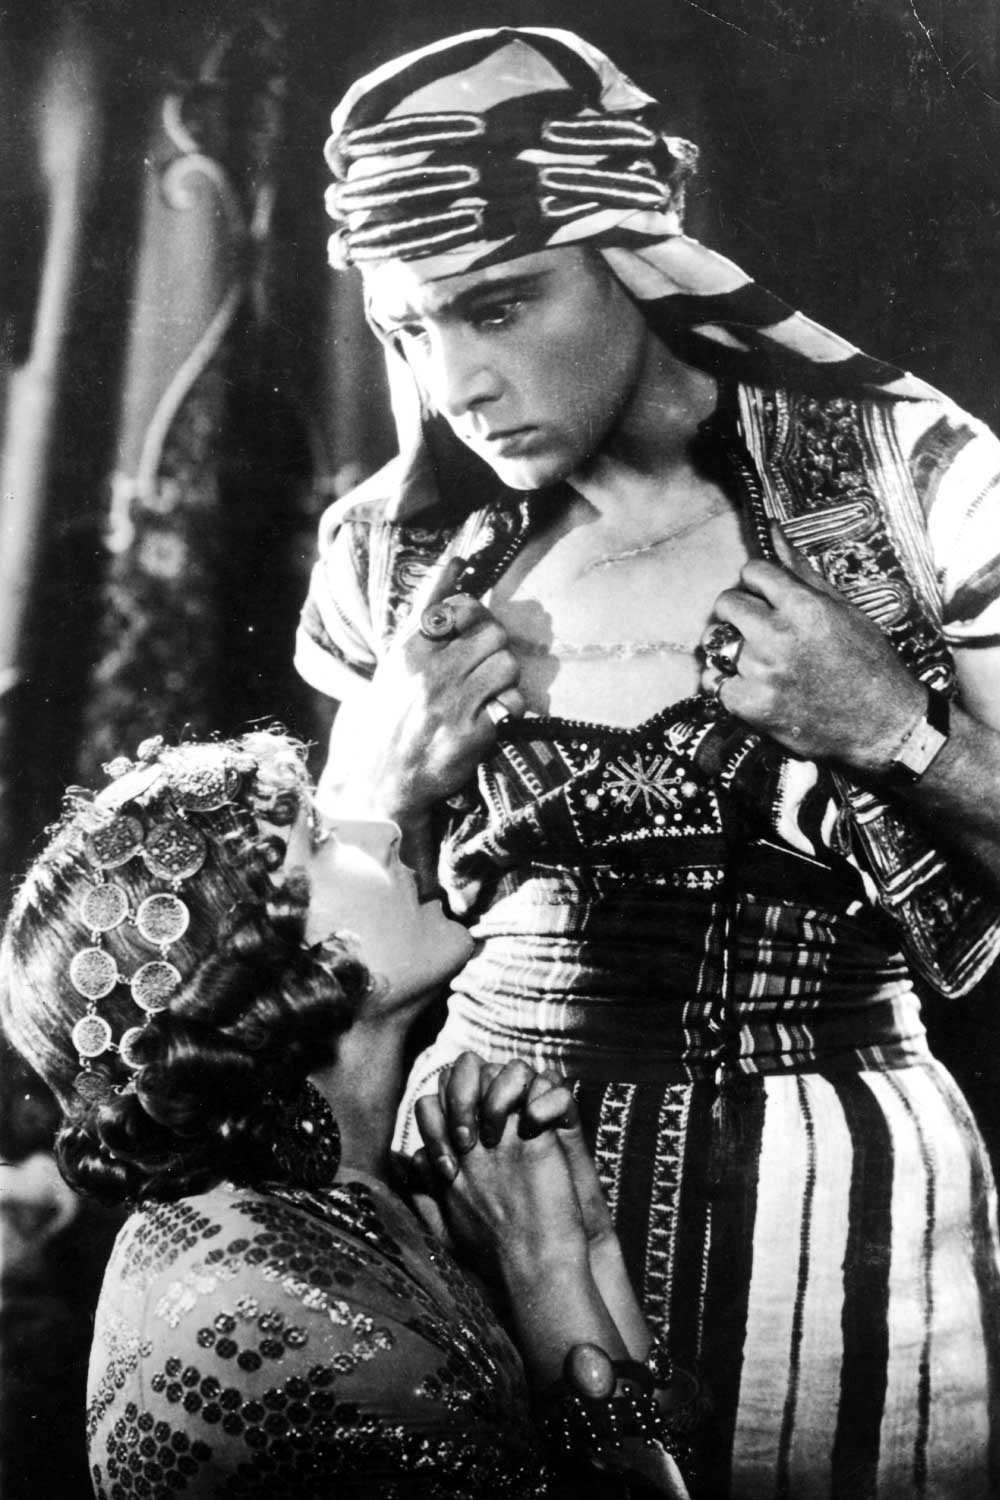 Vilma Banky and Rudolph Valentino in the 1926 film, Son of the Sheik where Valentino insisted on wearing his treasured Cartier Tank during the filming